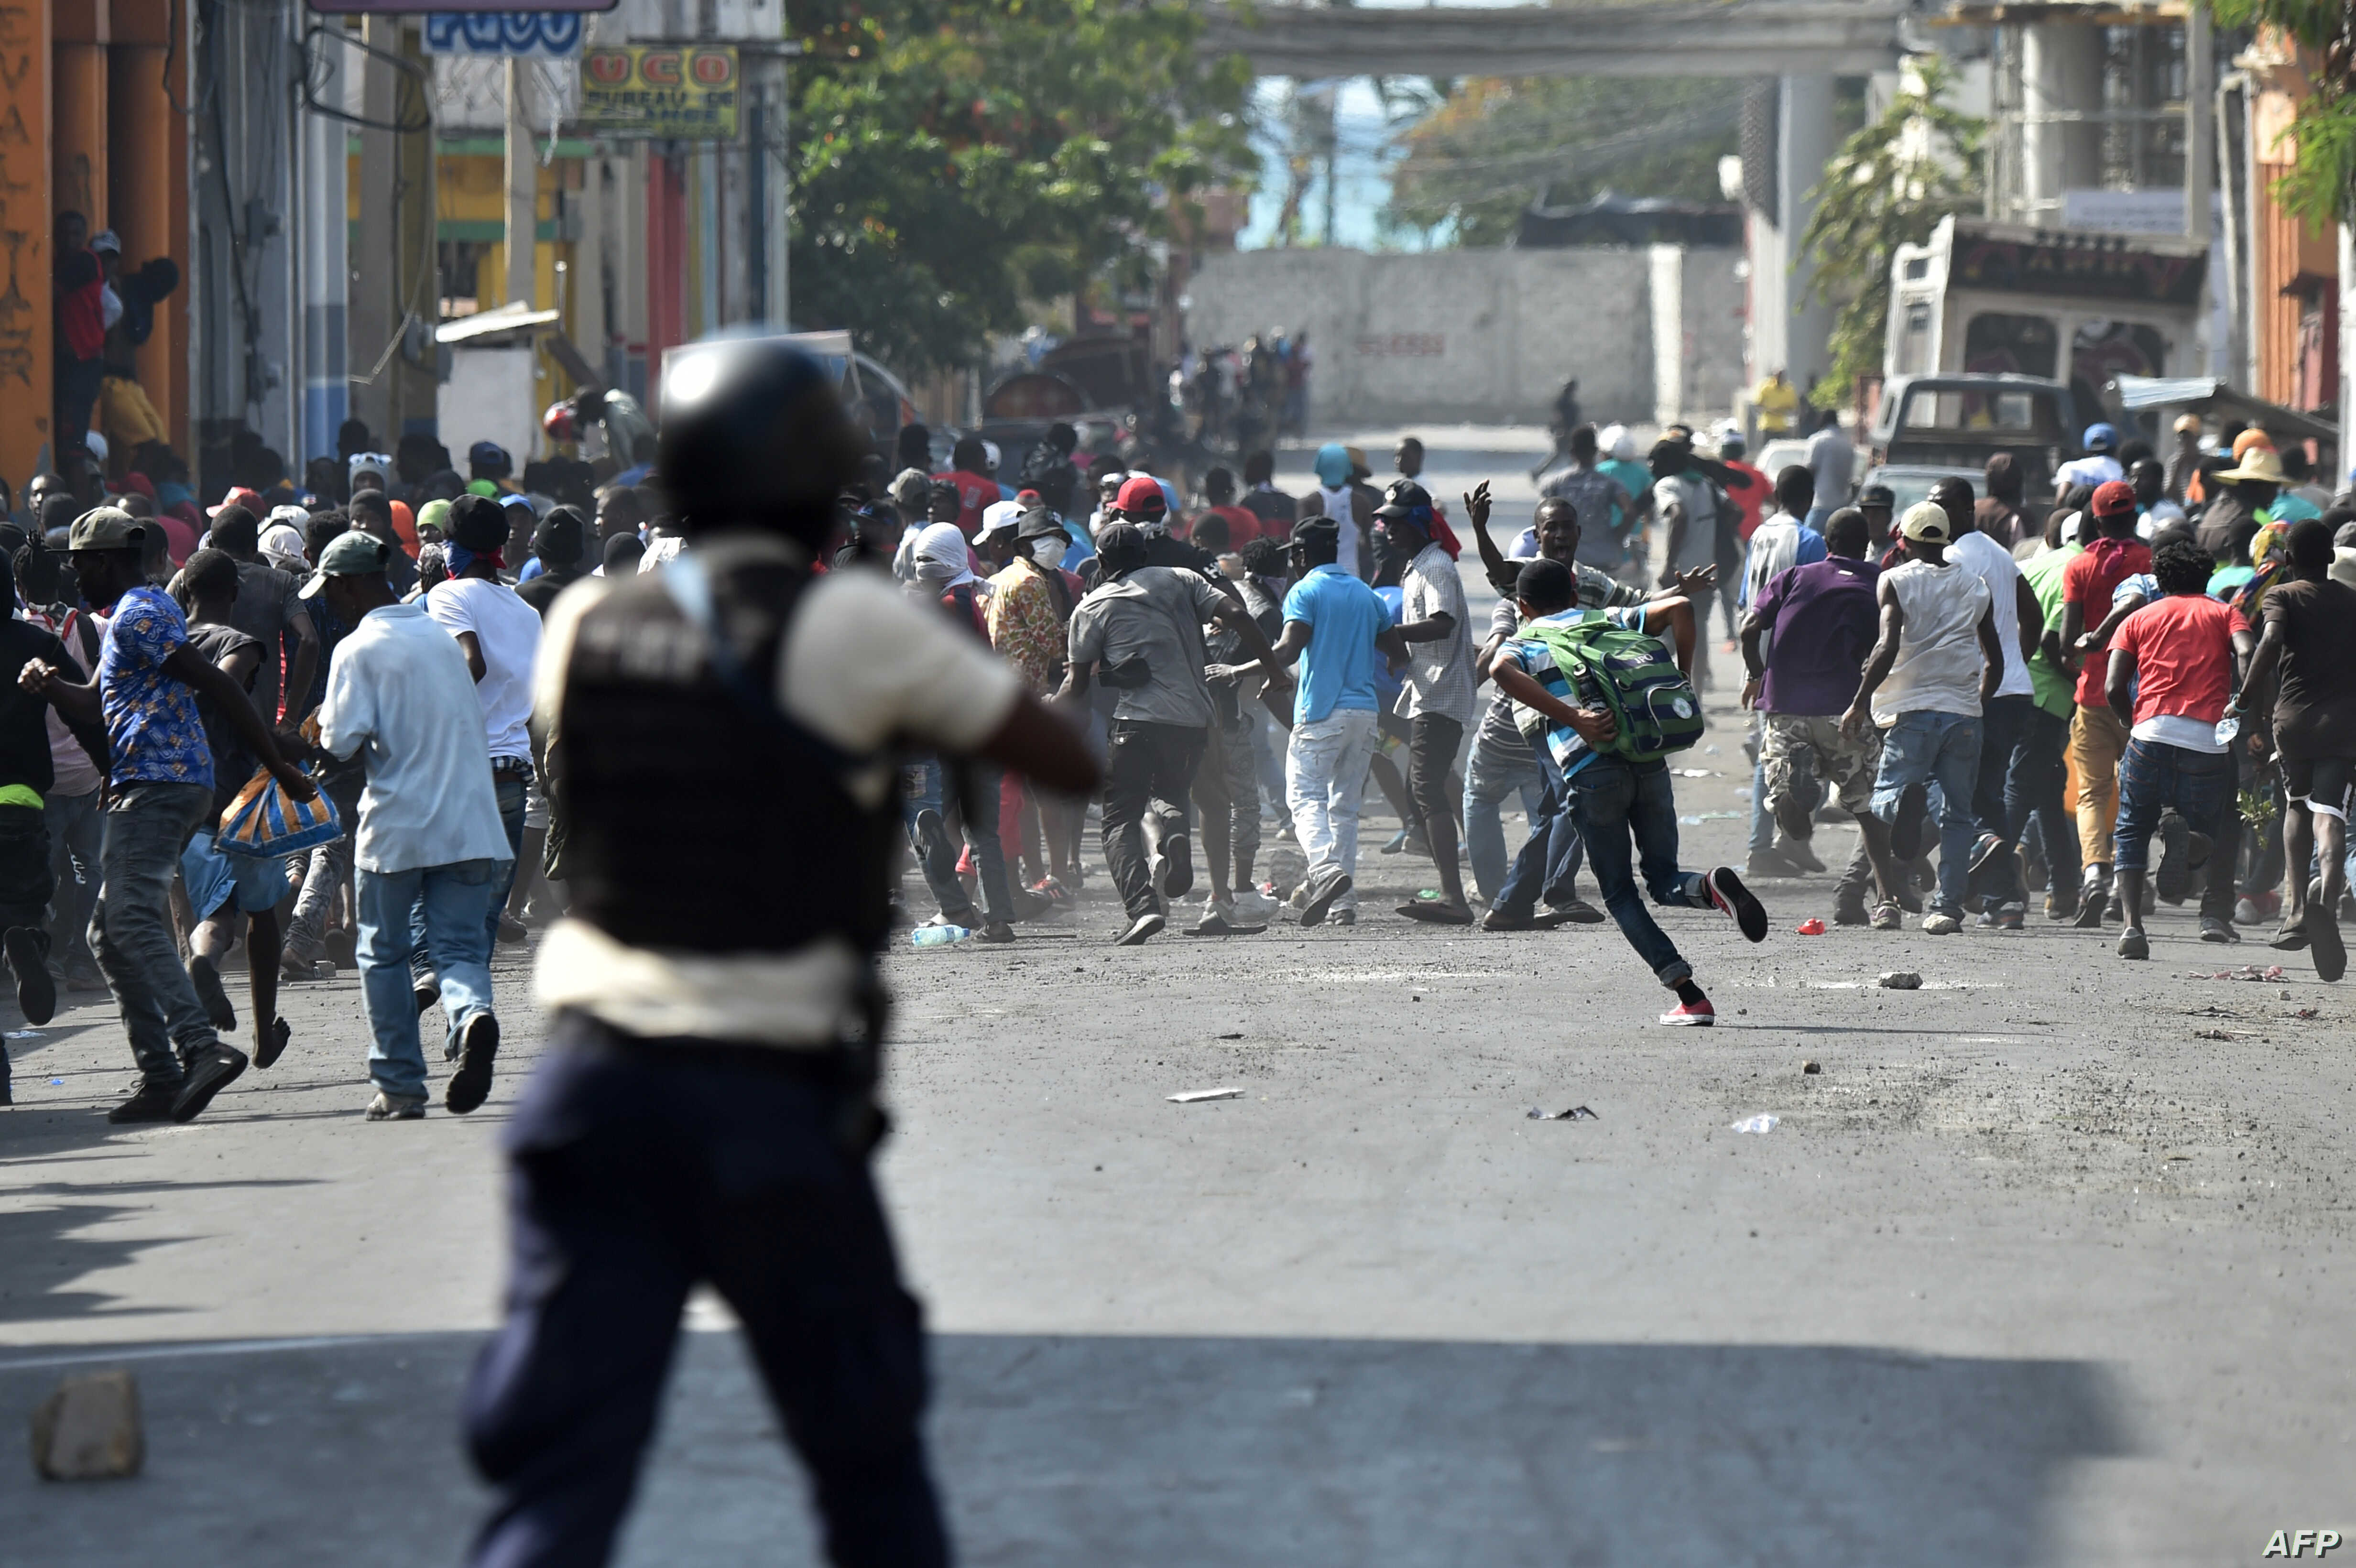 Demonstrators flee as Haitian police open fire during clashes in the center of the Haitian capital of Port-au-Prince, Feb. 13, 2019.